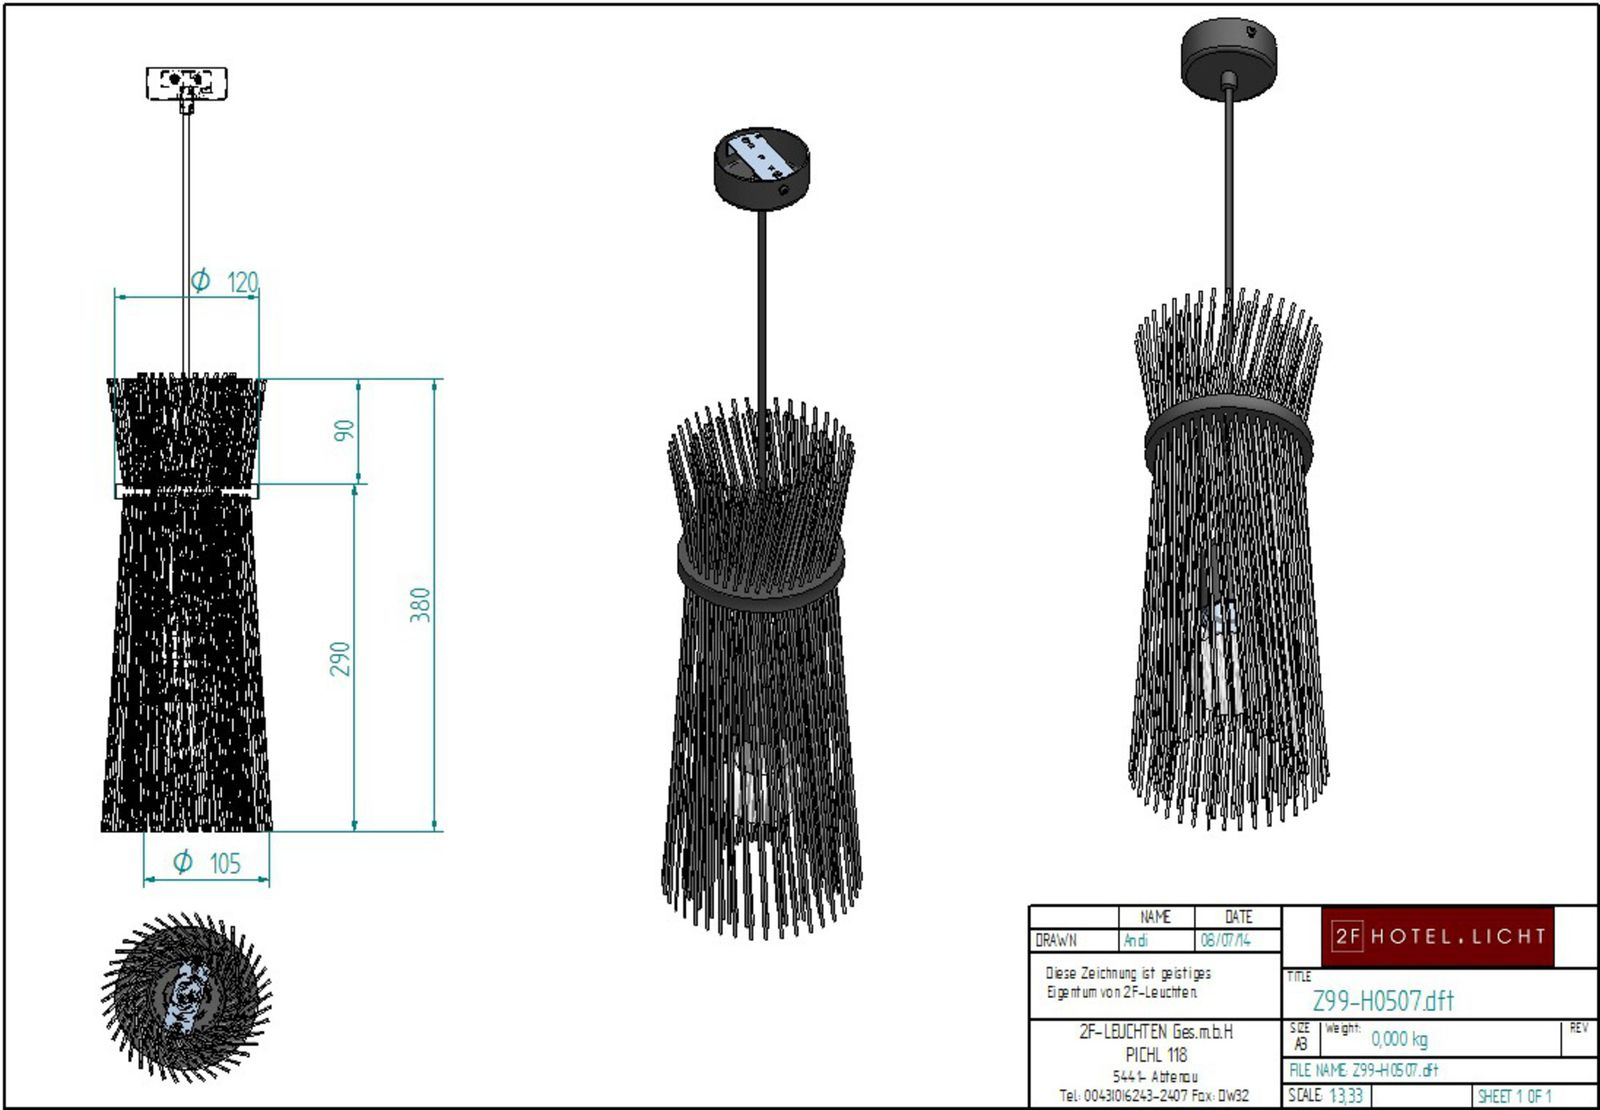 pendant, lenght=120mm, height:1000mm, surface: metal, MB, techn. Data: 1xE27, 60W, cable colour: black